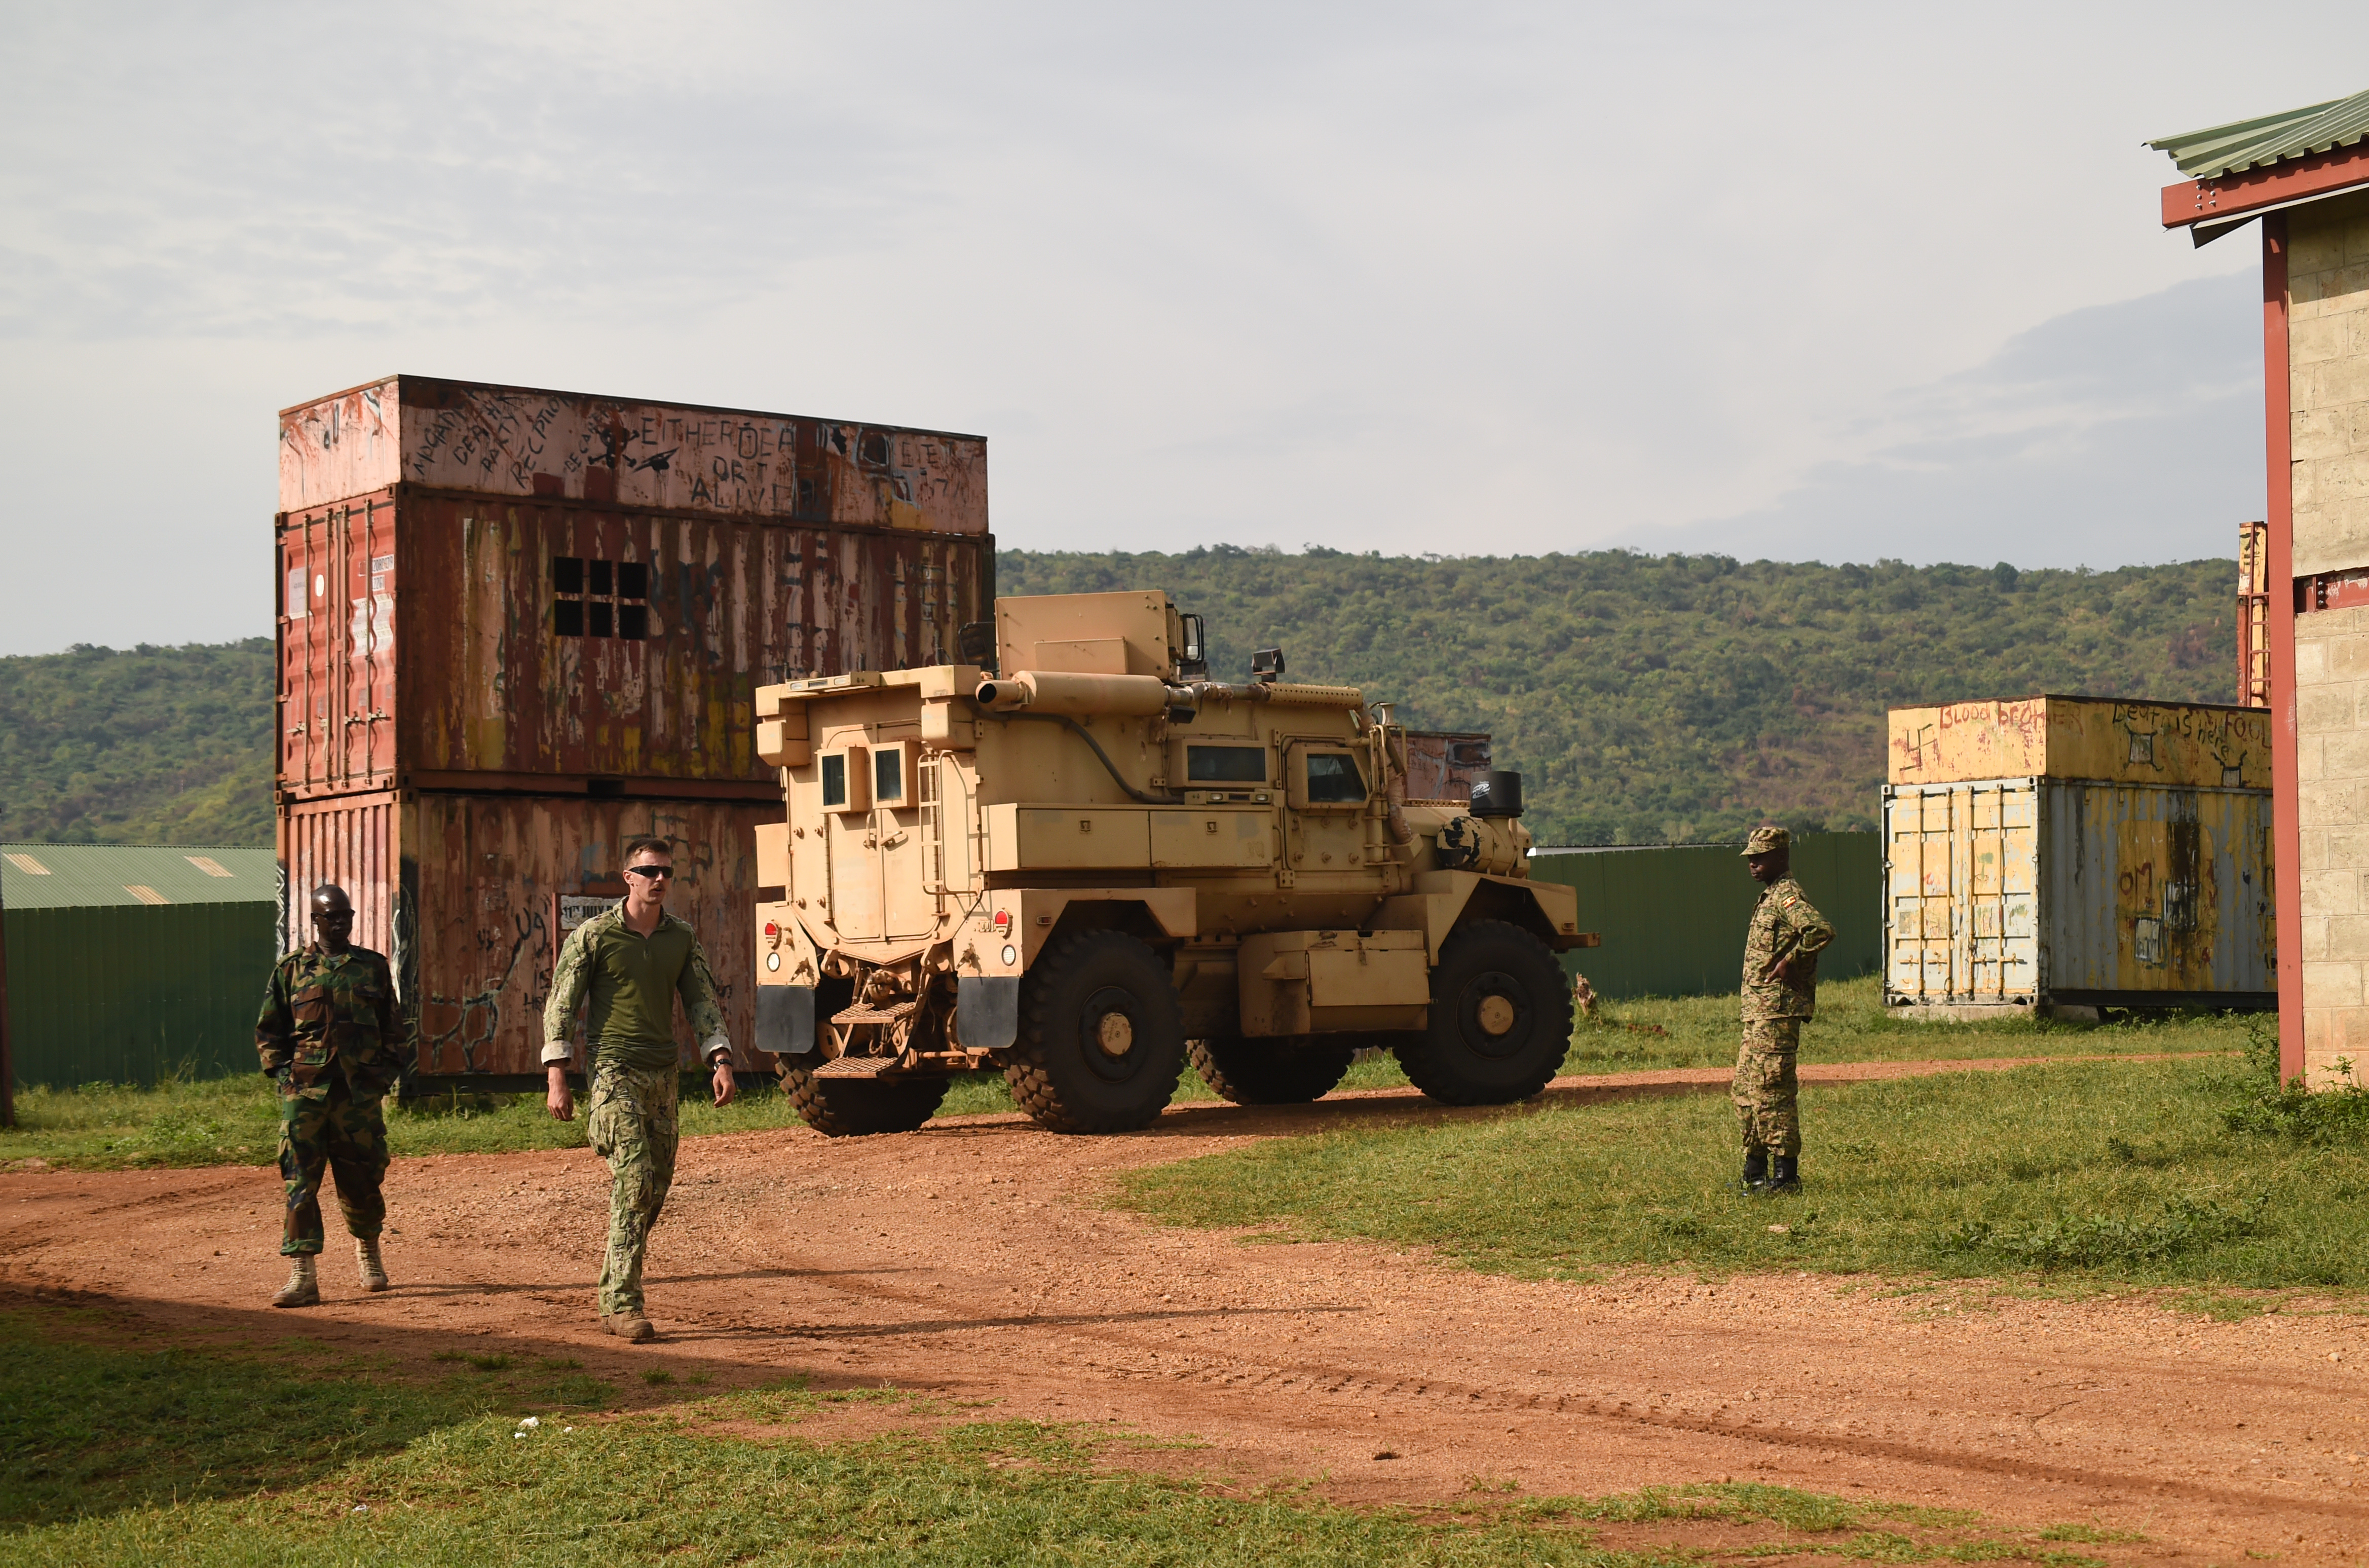 U.S. Navy Explosive Ordnance Disposal Technician 2nd Class Gary Lathrop, Combined Joint Task Force-Horn of Africa, Task Force Sparta, EOD Mobile Unit 8, and Uganda People's Defense Force (UPDF) cadre move into place for counter-IED training at Camp Singo, Uganda, March 6, 2017.  The training gave UPDF members a chance to locate and clear IEDs in and around buildings and along the road. (U.S. Air National Guard photo by Staff Sgt. Penny Snoozy)